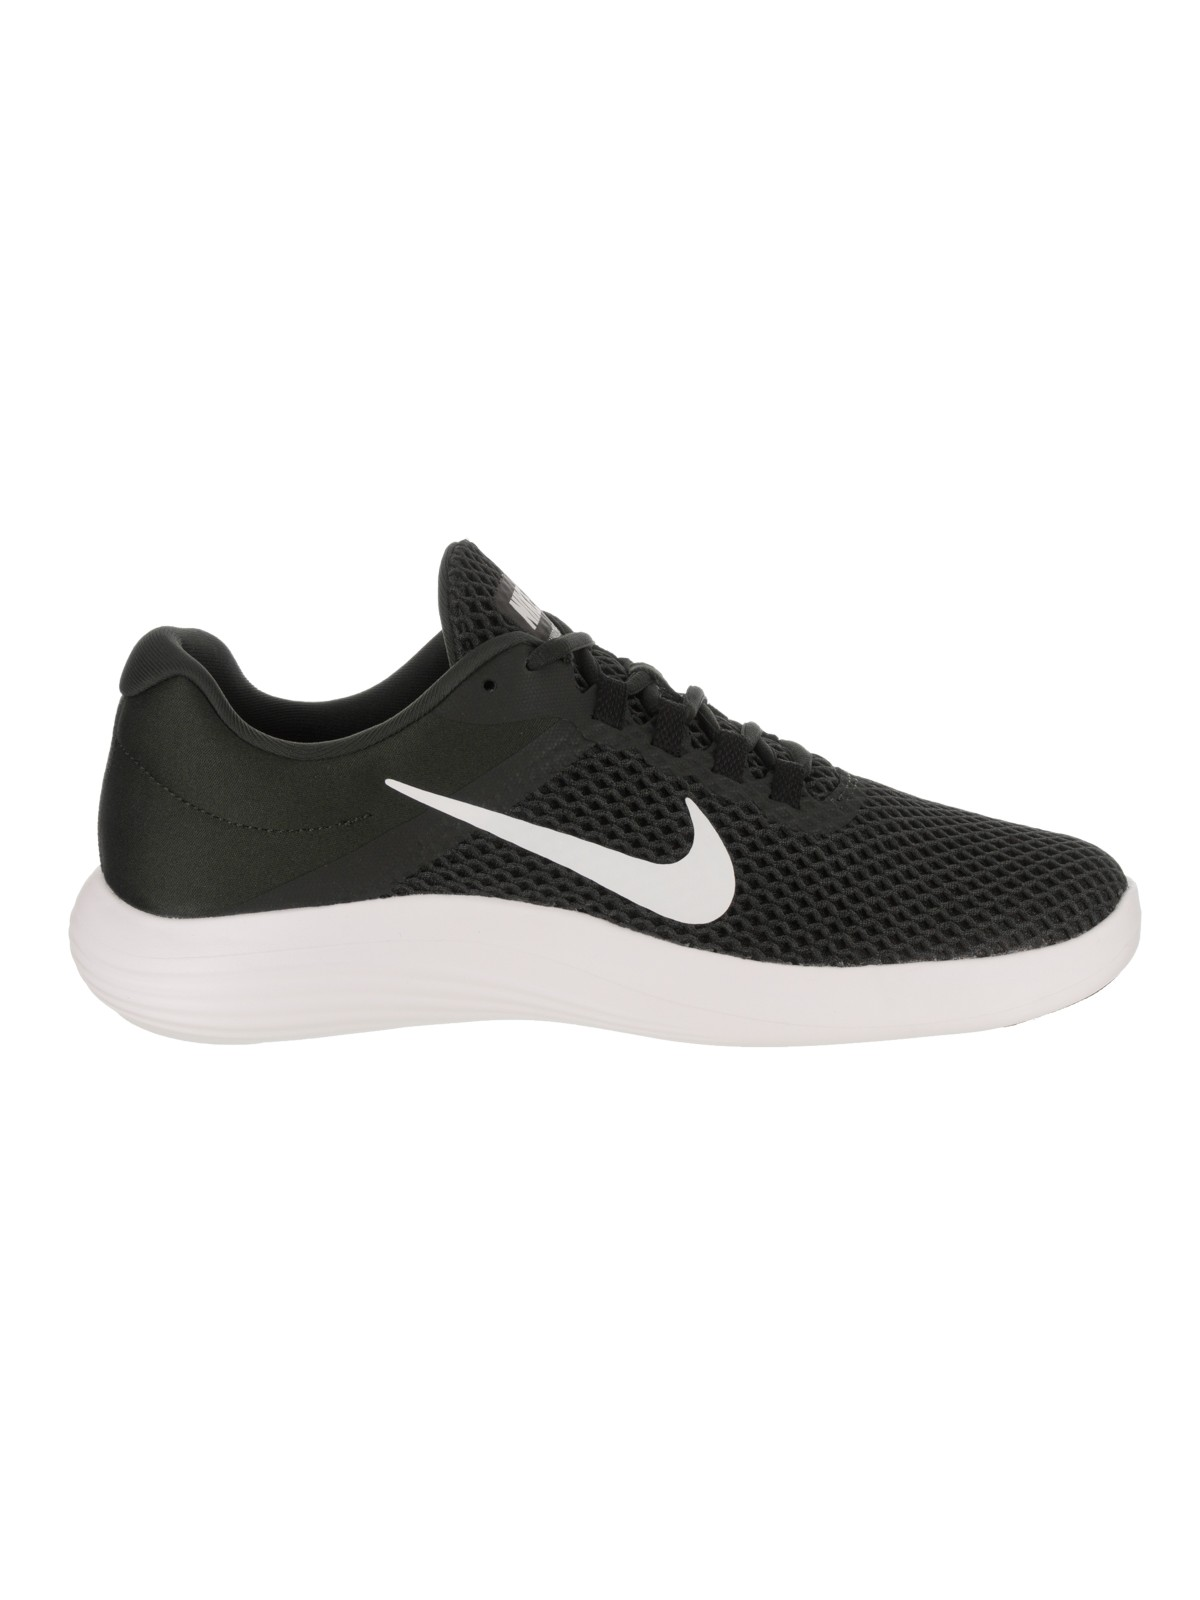 Nike Men's Lunarconverge 2 Running Shoe